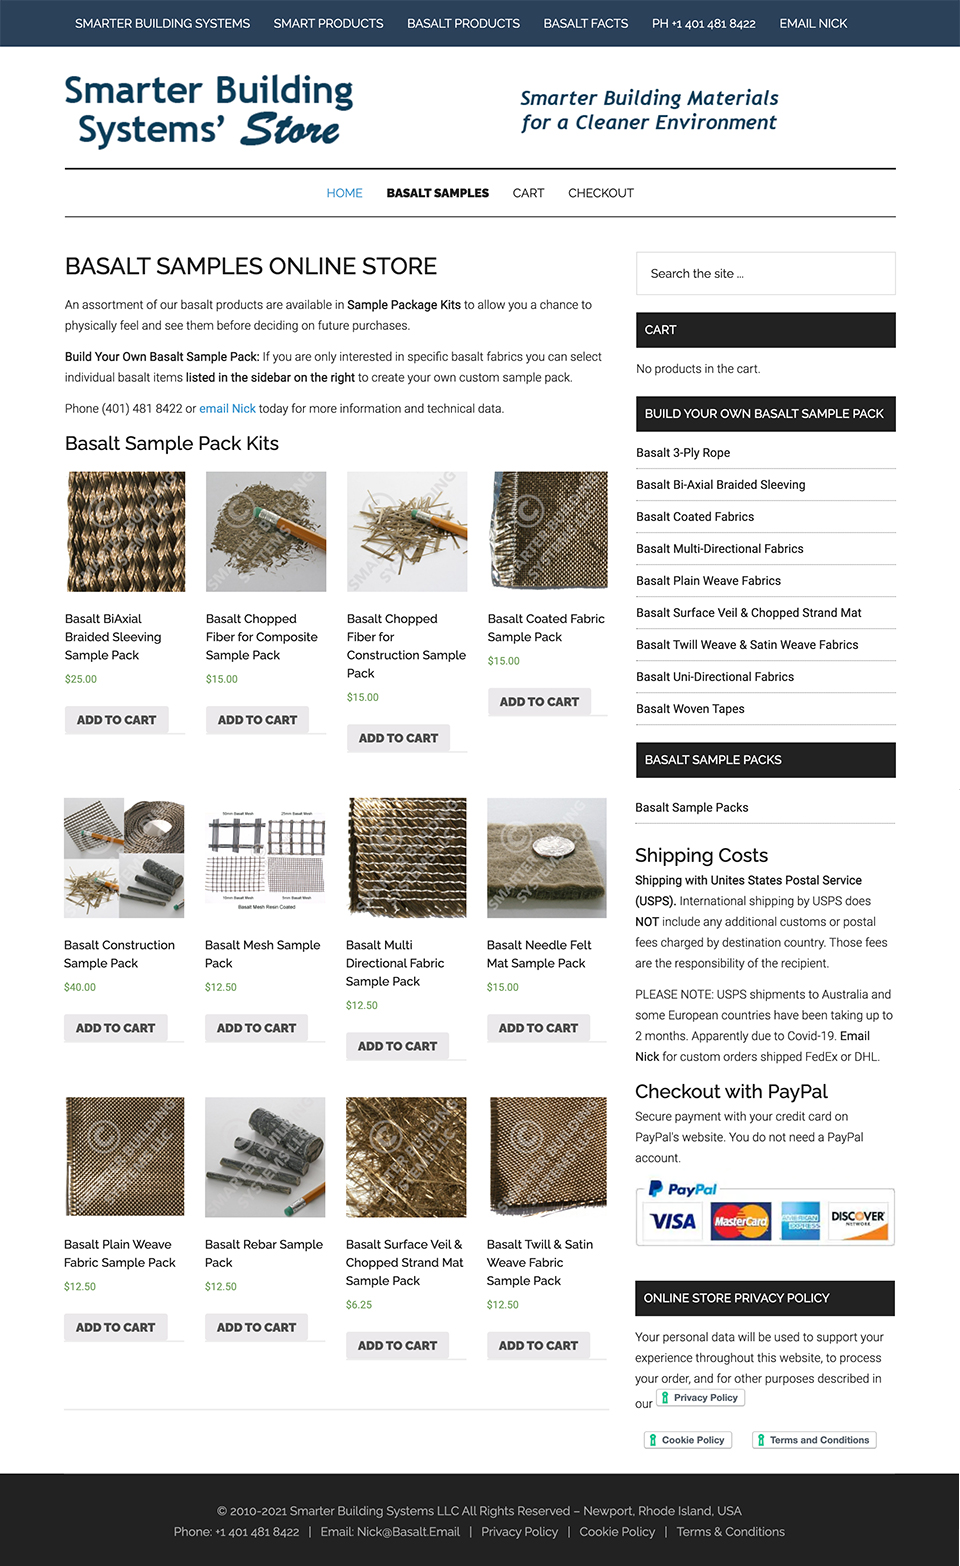 Smarter Building Systems online store